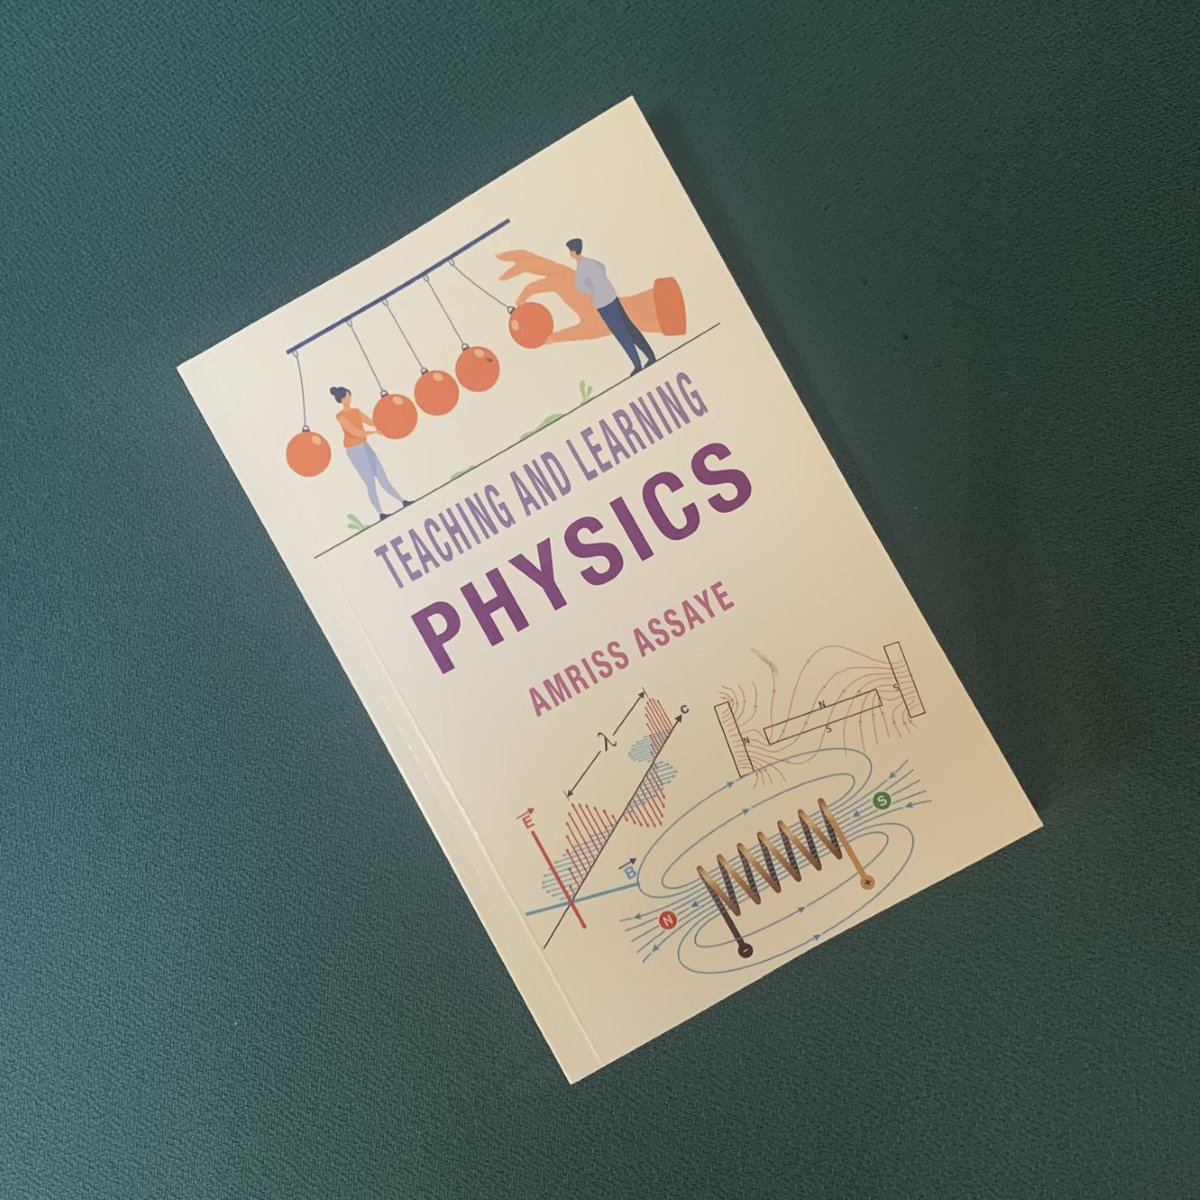 Congratulations to our Trust Learning Lead for Science (Physics) Amriss Assaye who has published his first book 'Teaching and Learning Physics' https://t.co/AfQ00HMMuV https://t.co/gZIMpevcGF